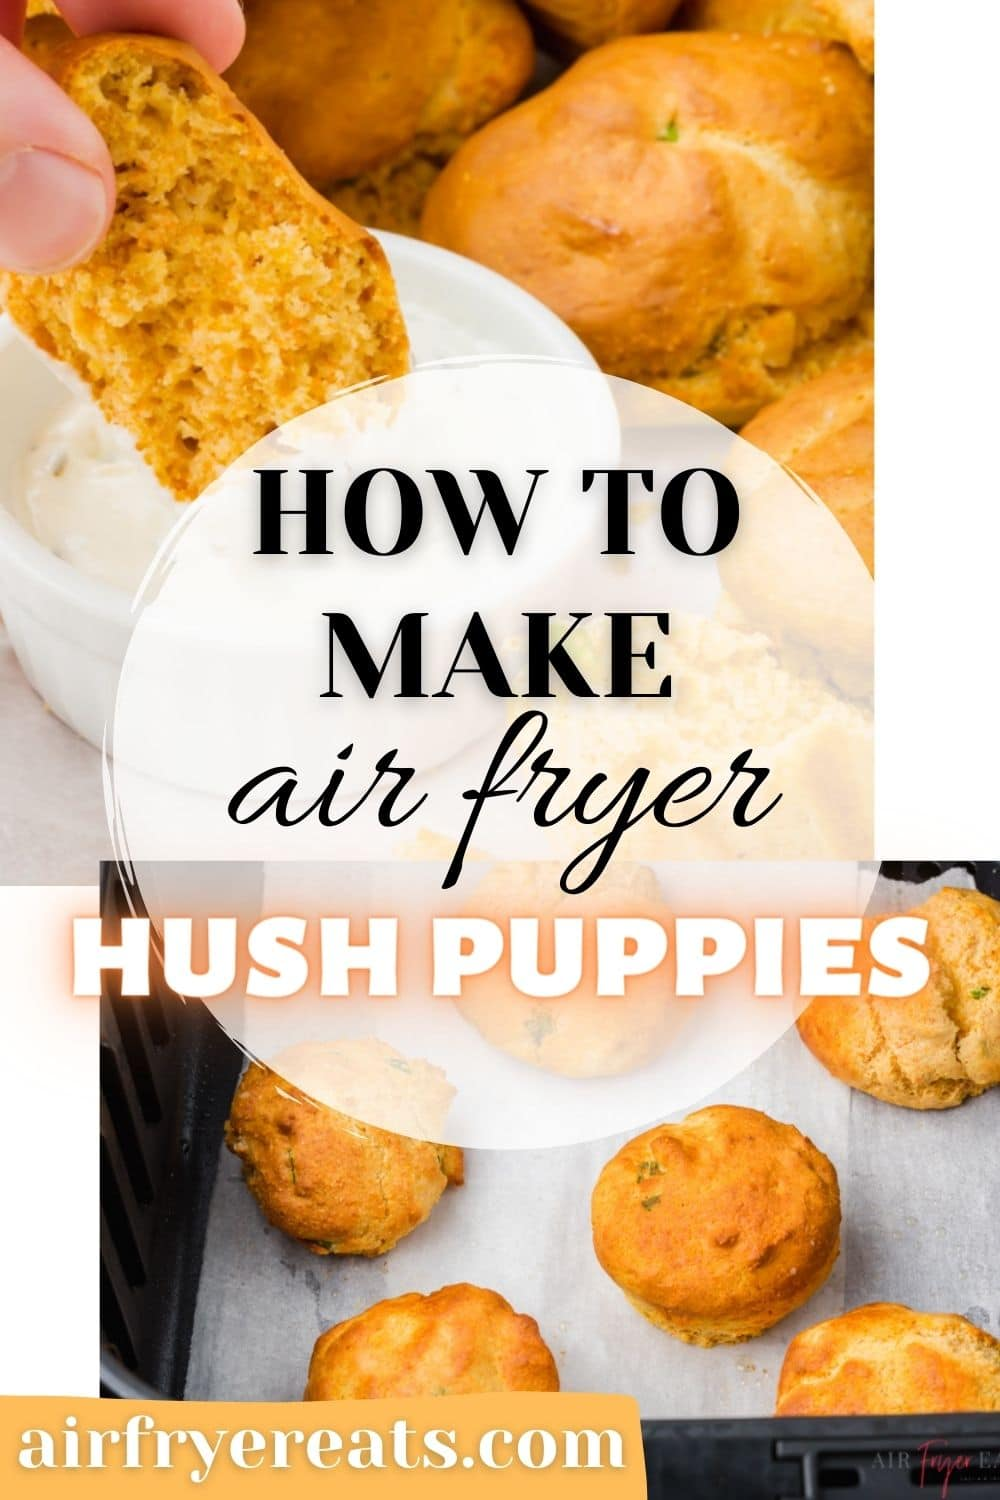 Homemade Air Fryer Hush Puppies are soft, pillow-y air fried corn fritters with the perfect savory seasonings. These are a gluten free, low fat, and delicious side dish. via @vegetarianmamma